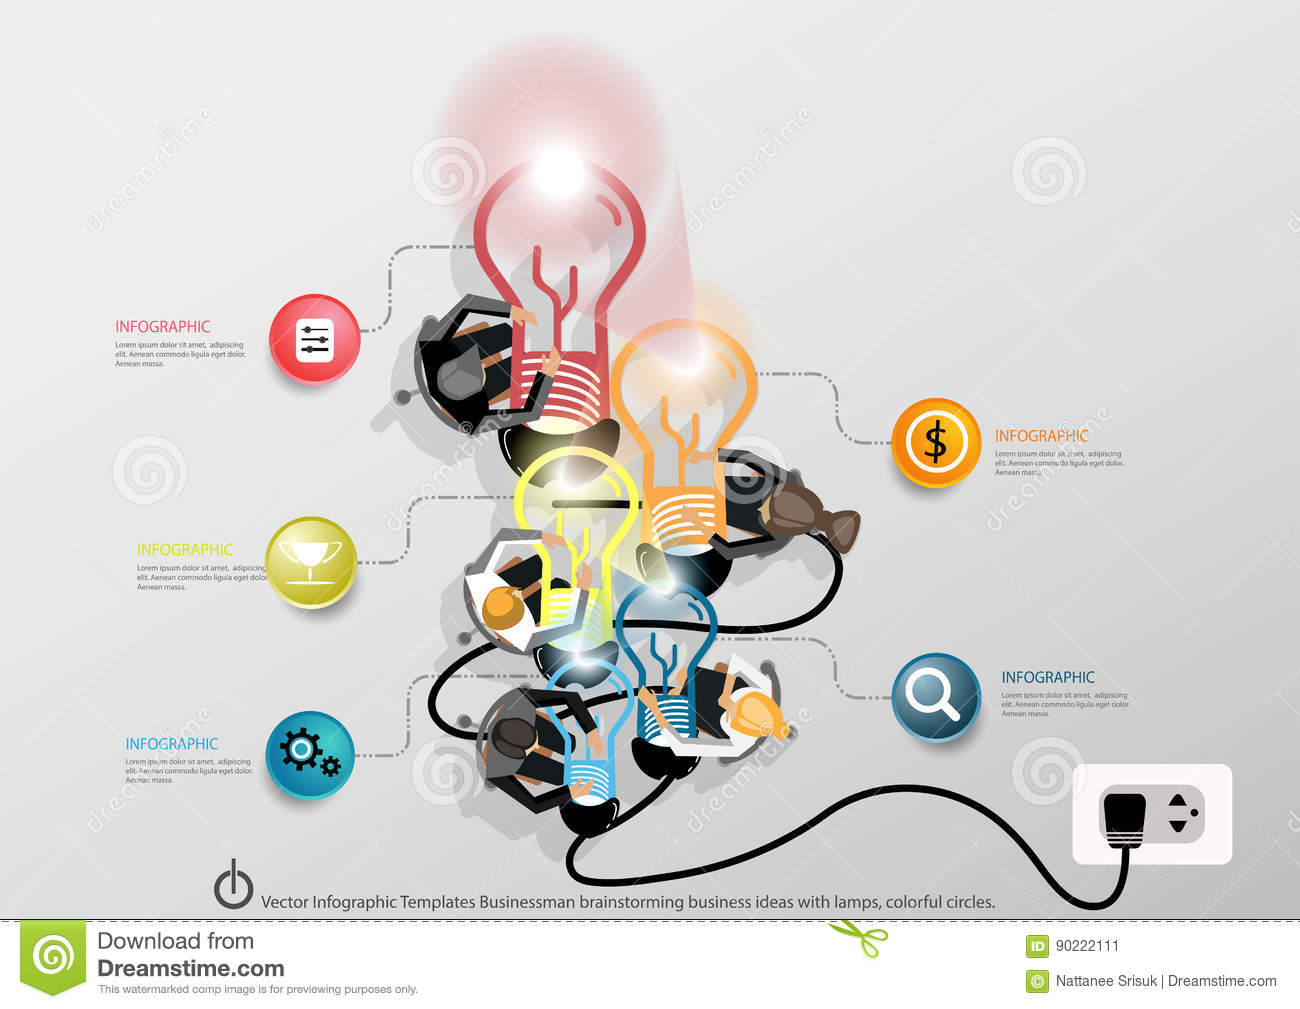 Vector Infographic Templates Businessman brainstorming business ideas with a world map, Notebook task, leveraging, lamps, colorful